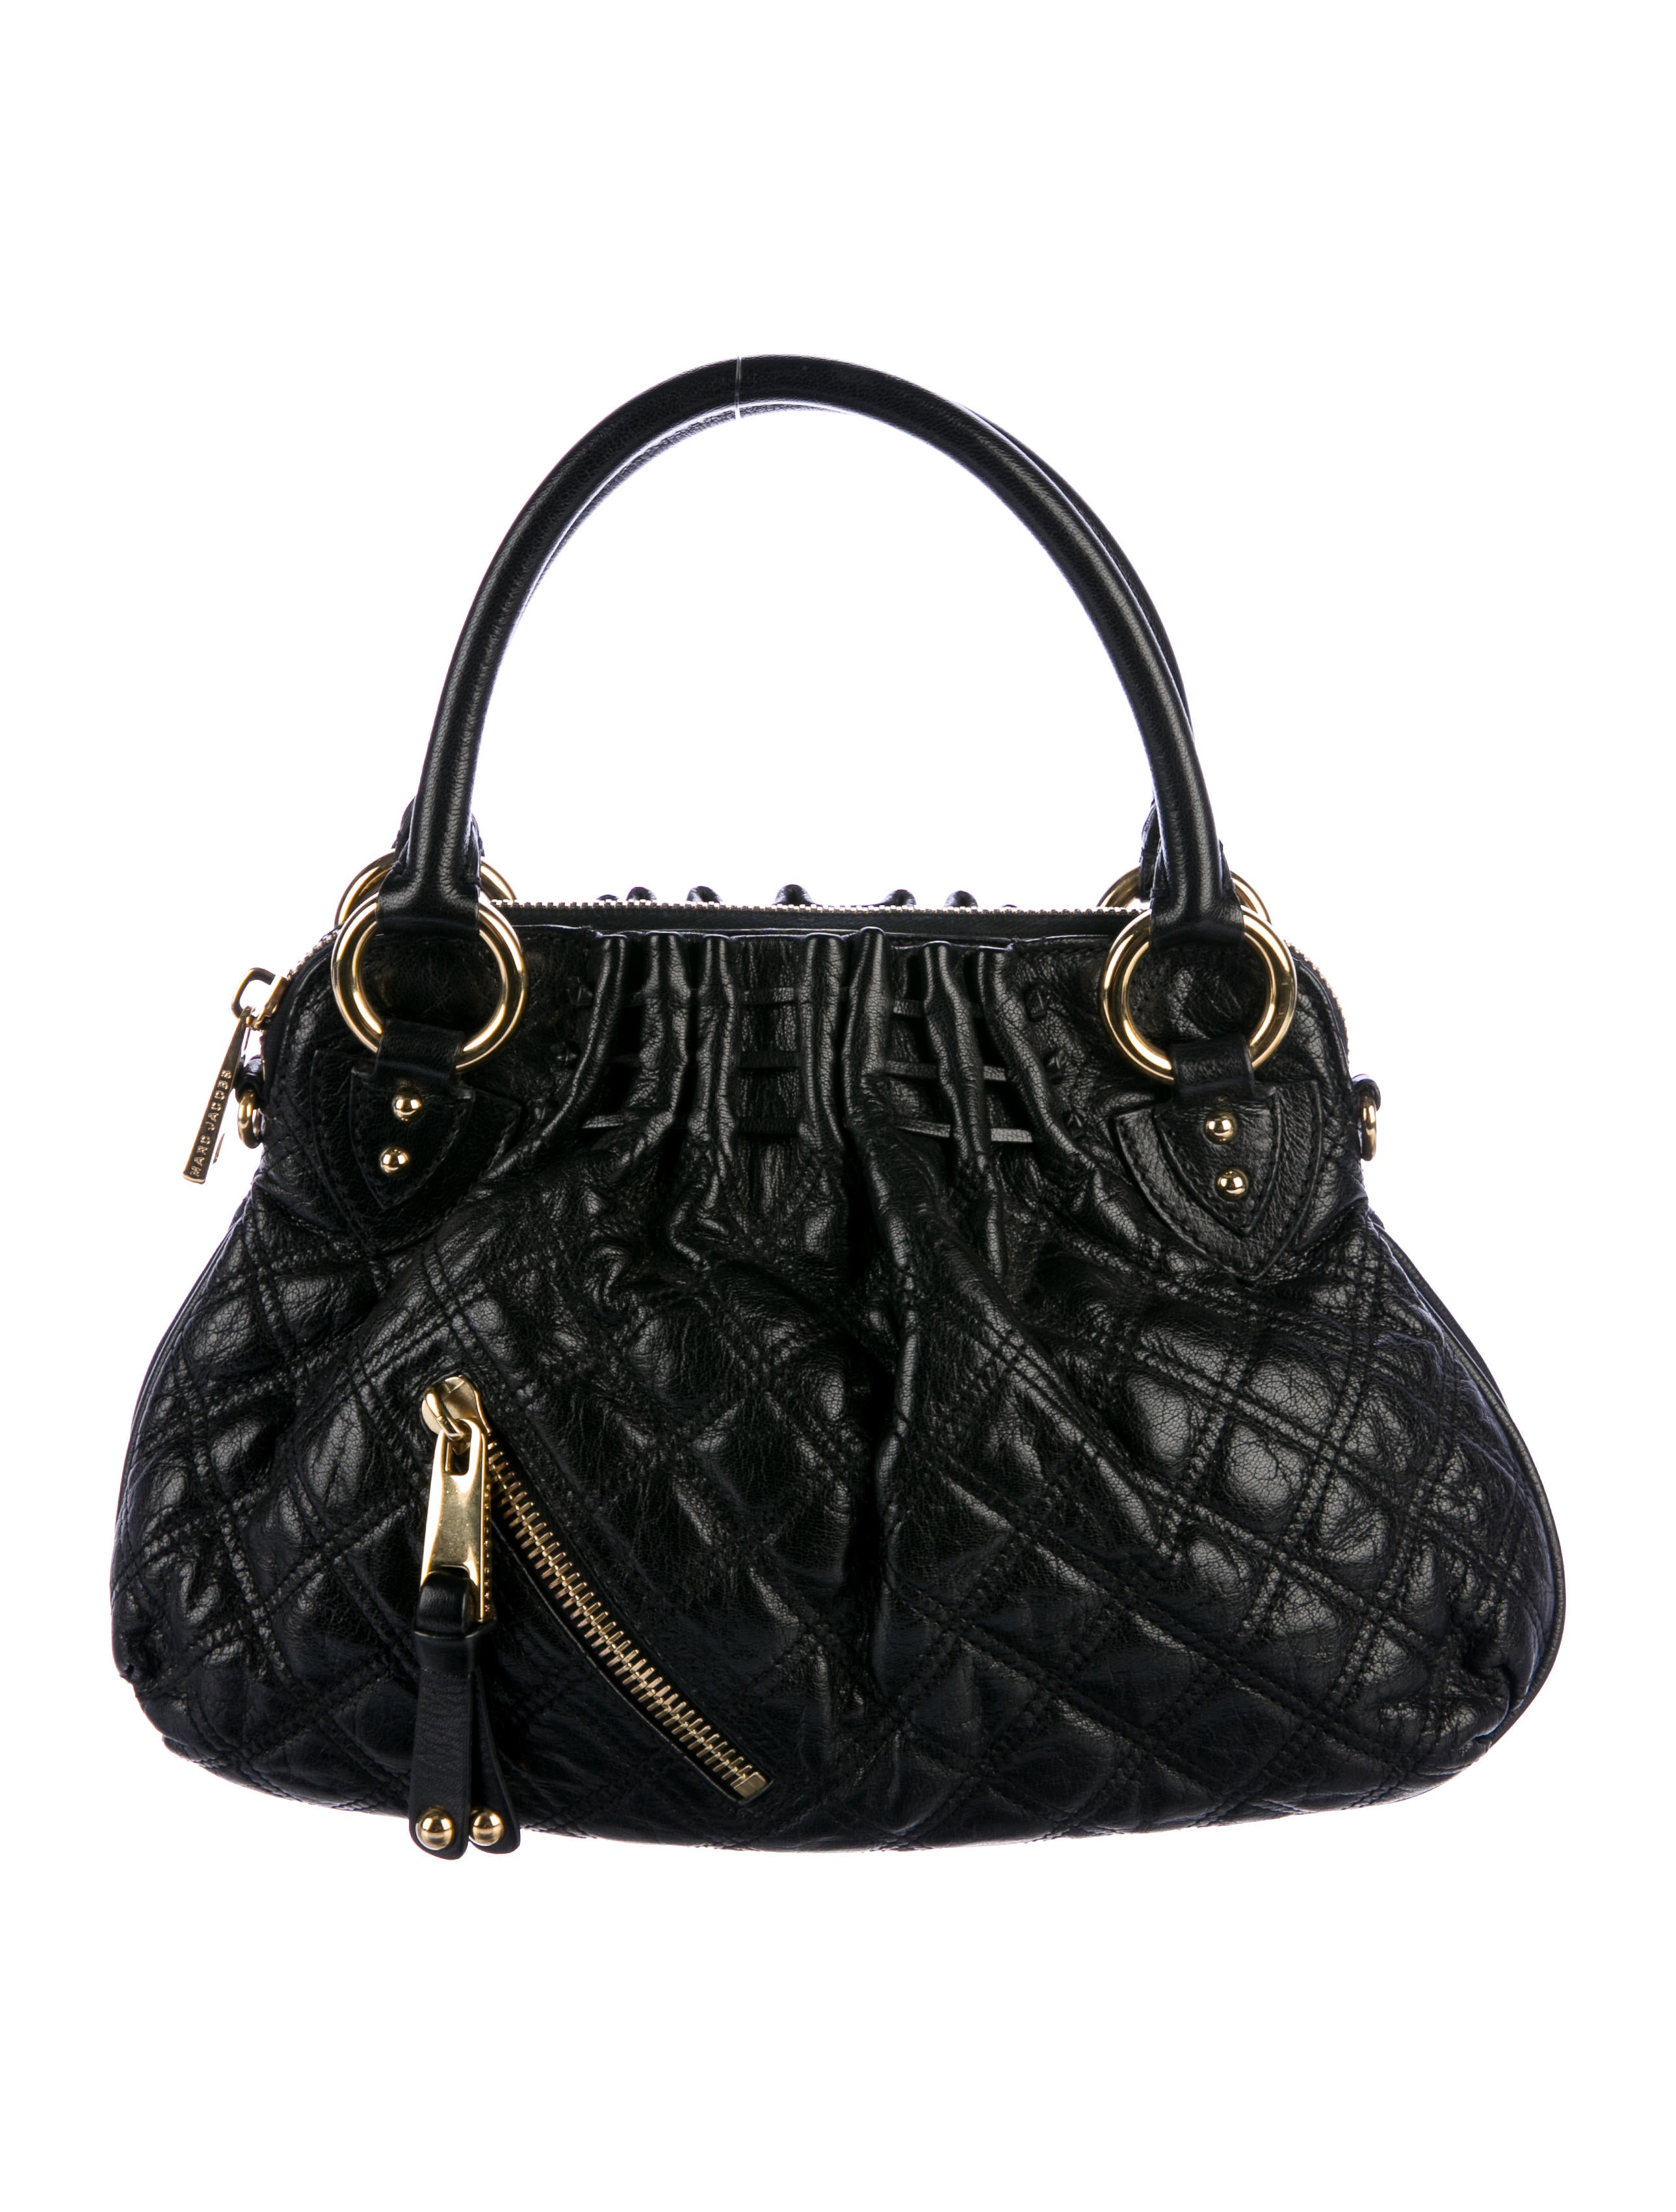 quilted leather handbags chanel new products black bag quilt brand flap authentic